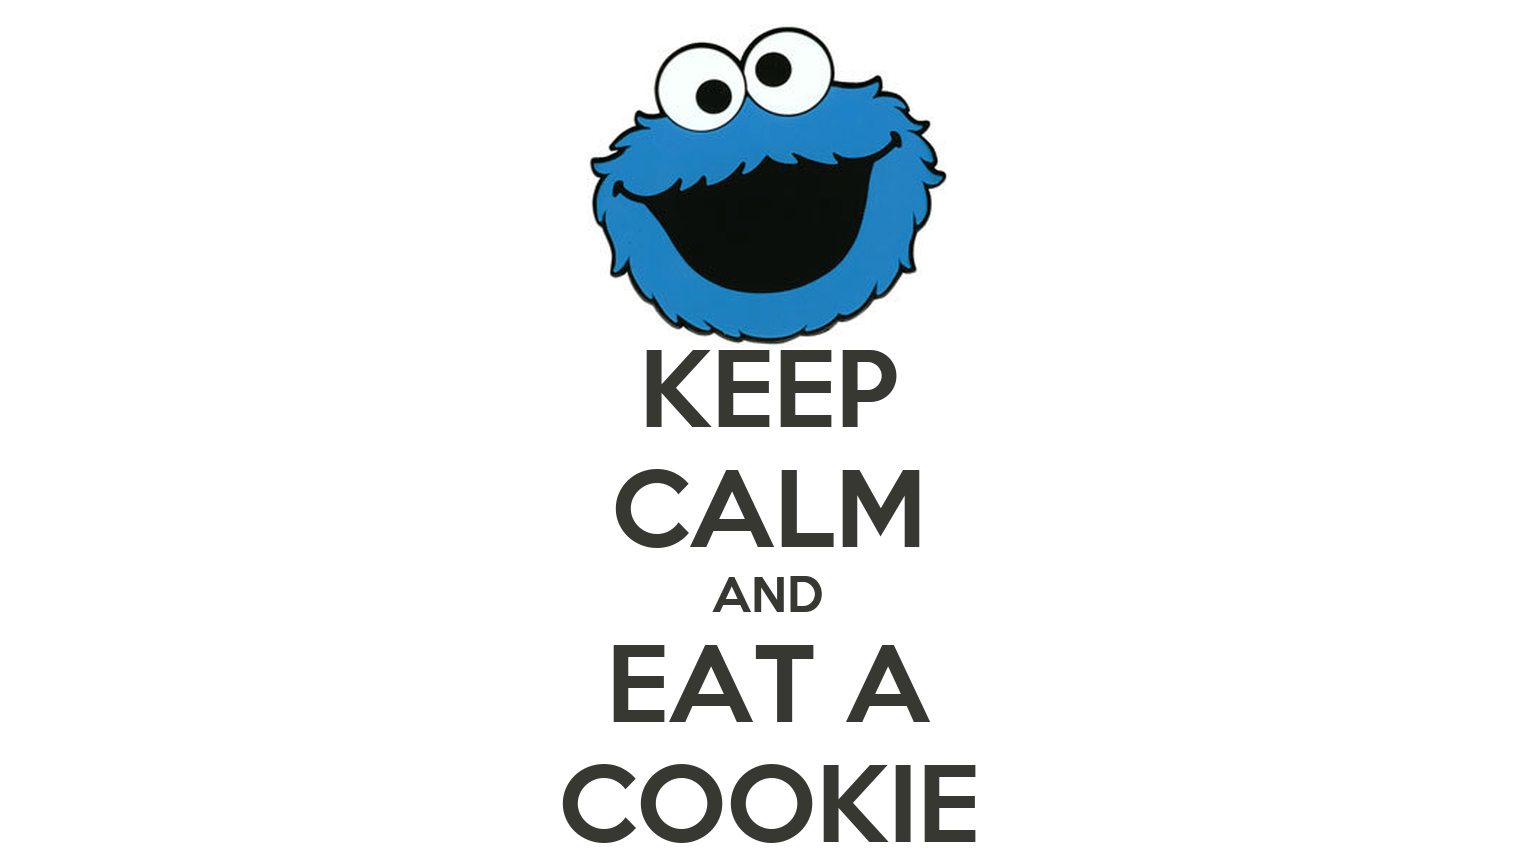 Eat A Cookie